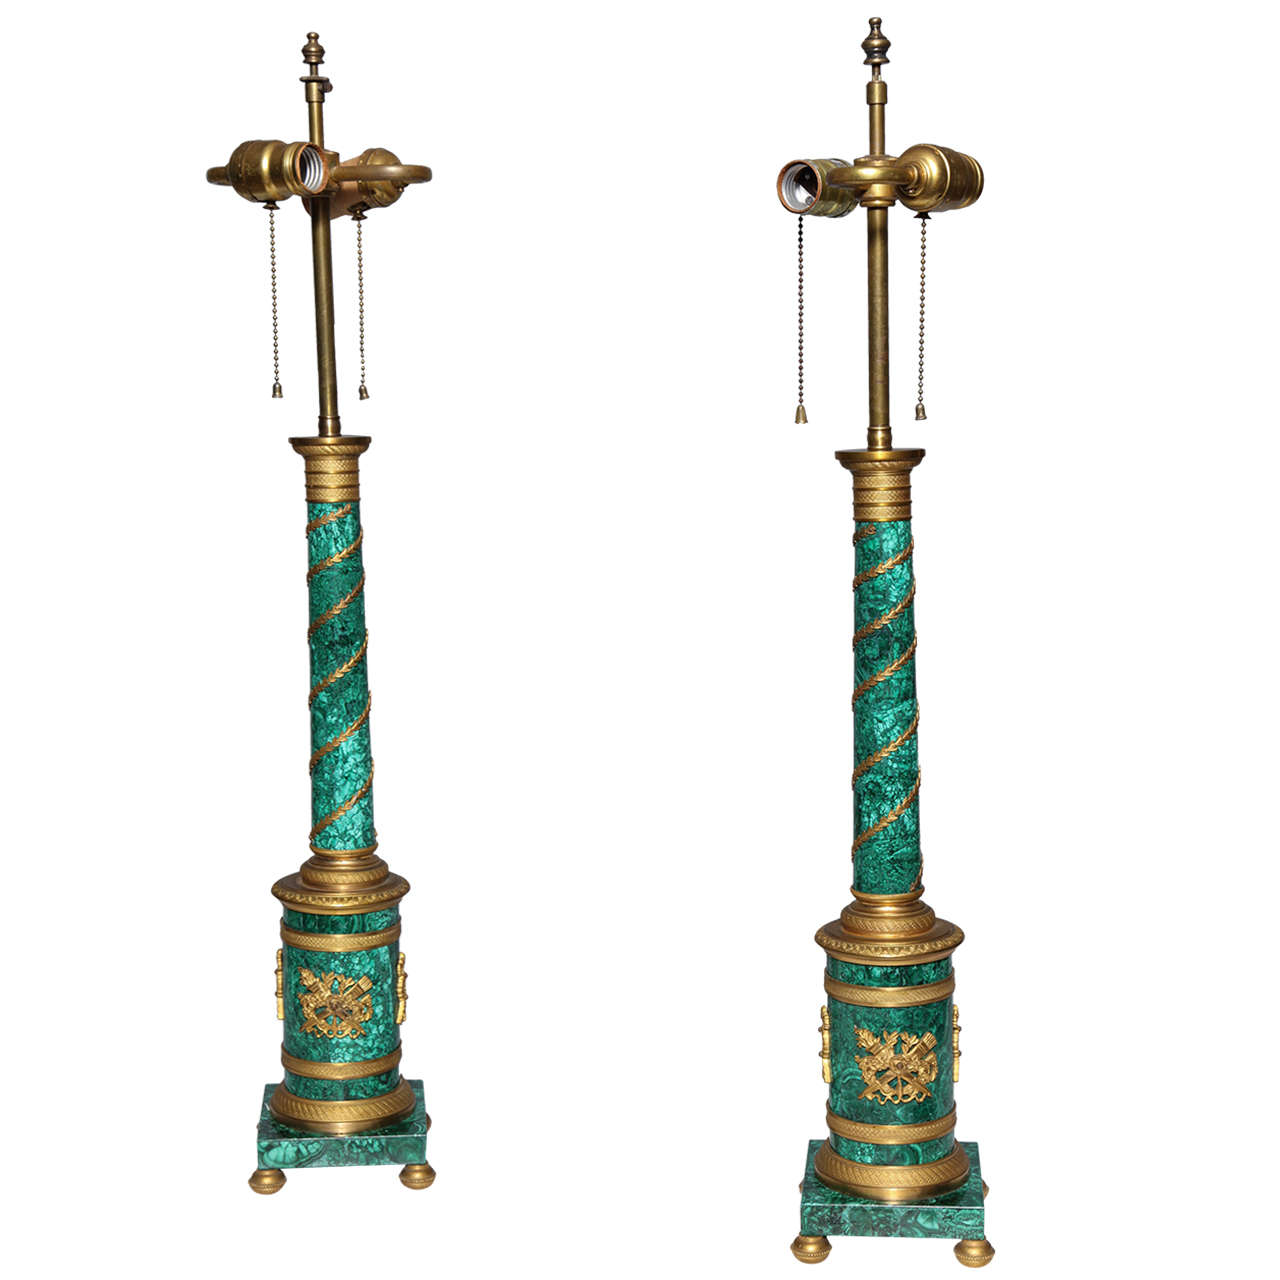 Pair of Russian Neoclassical Malachite and Gilt Bronze Column Table Lamps